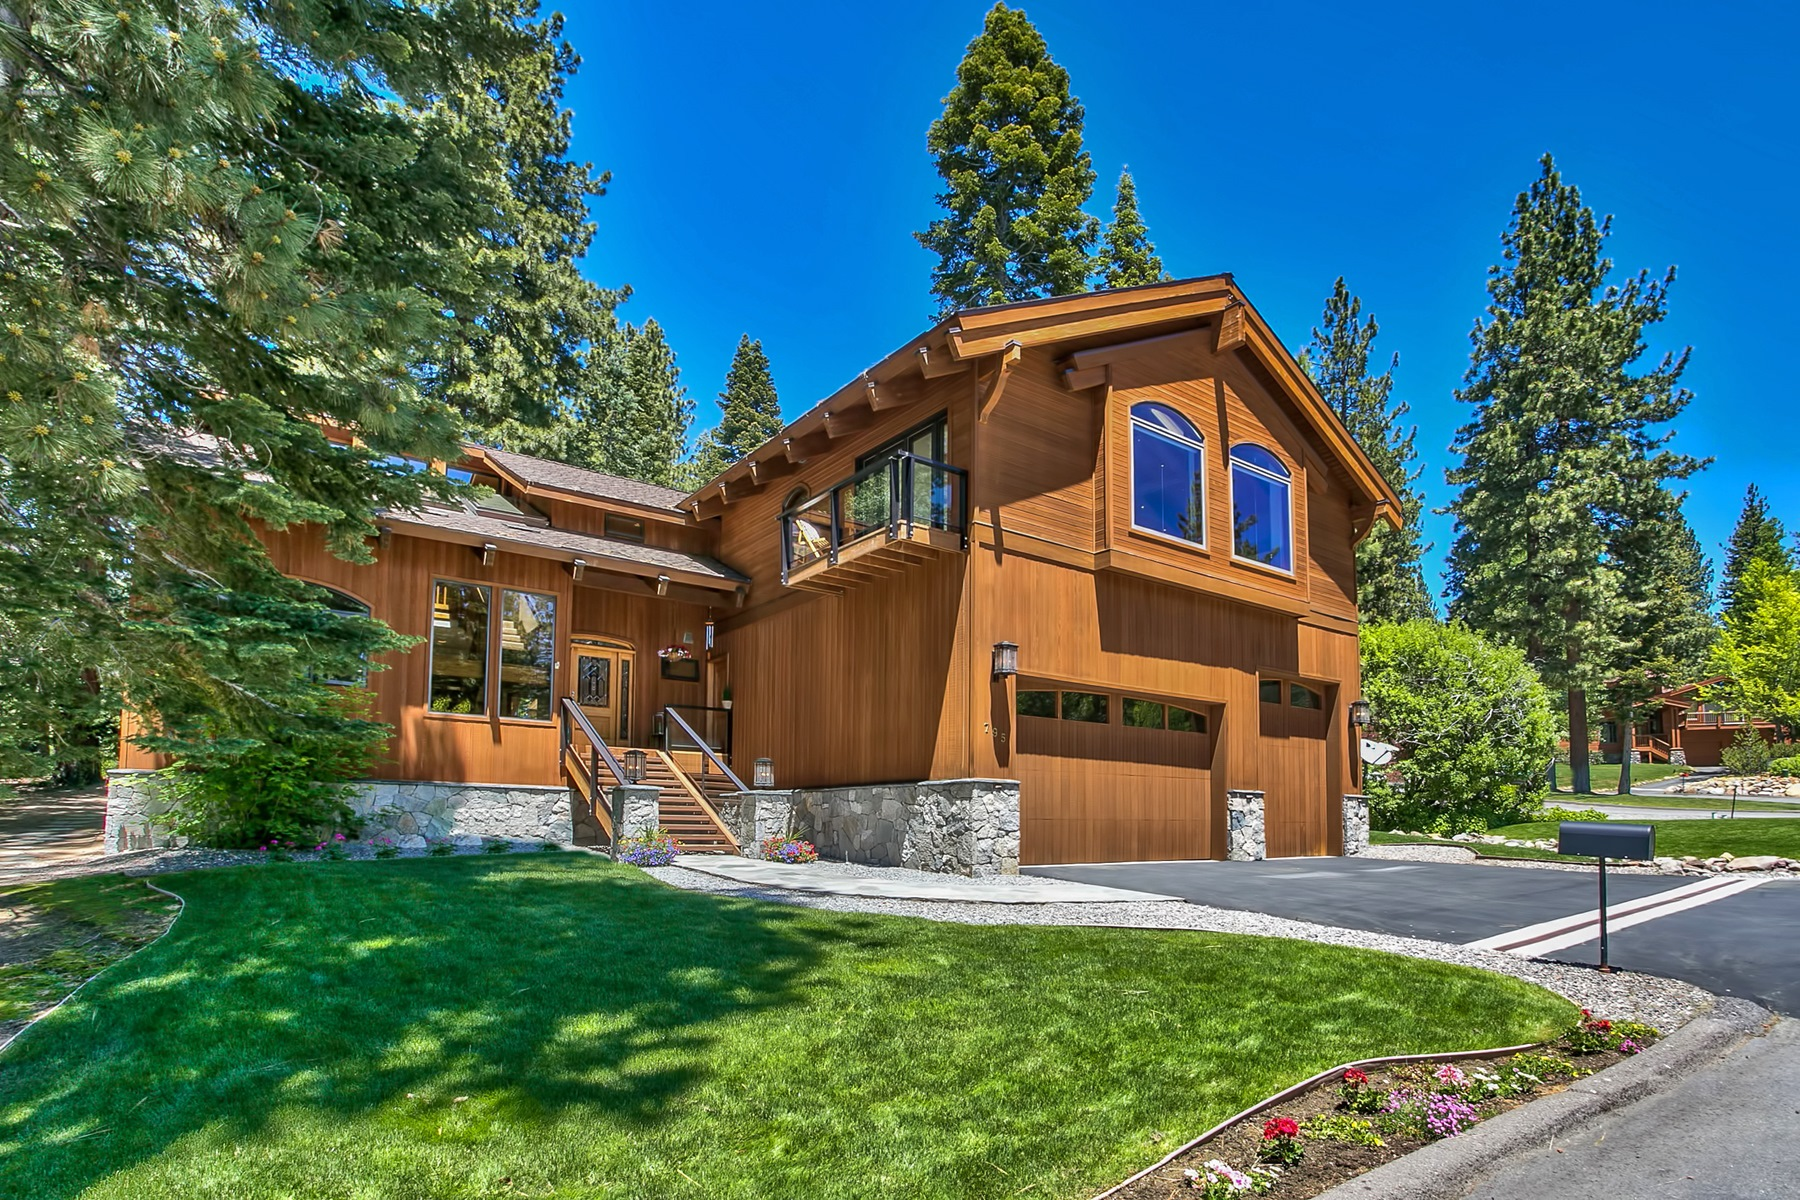 Maison unifamiliale pour l Vente à 795 Golfers Pass Road Incline Village, Nevada, 89451 Lake Tahoe, États-Unis